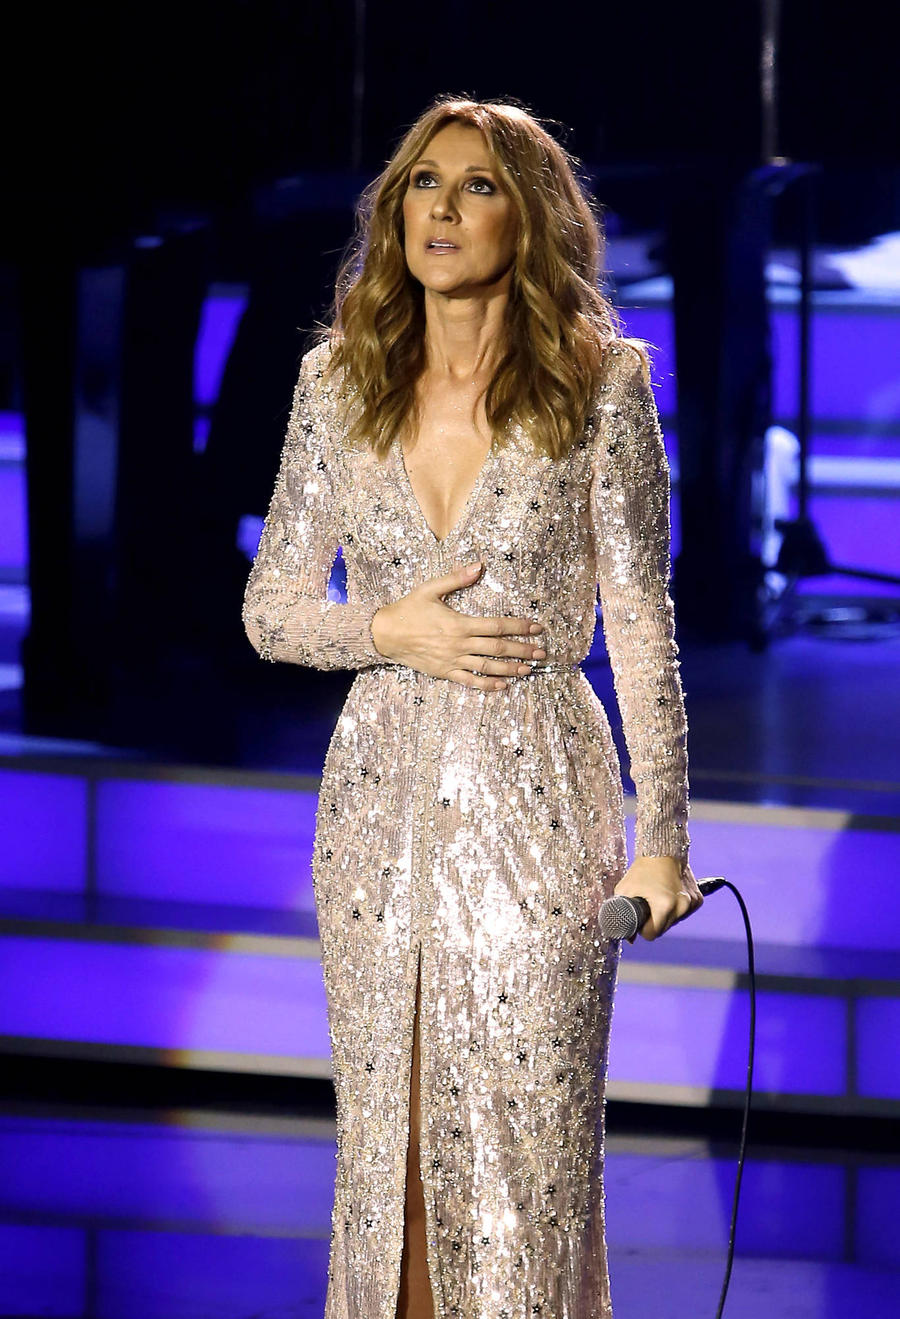 Celine Dion To Live-stream First Concert Since Husband's Death